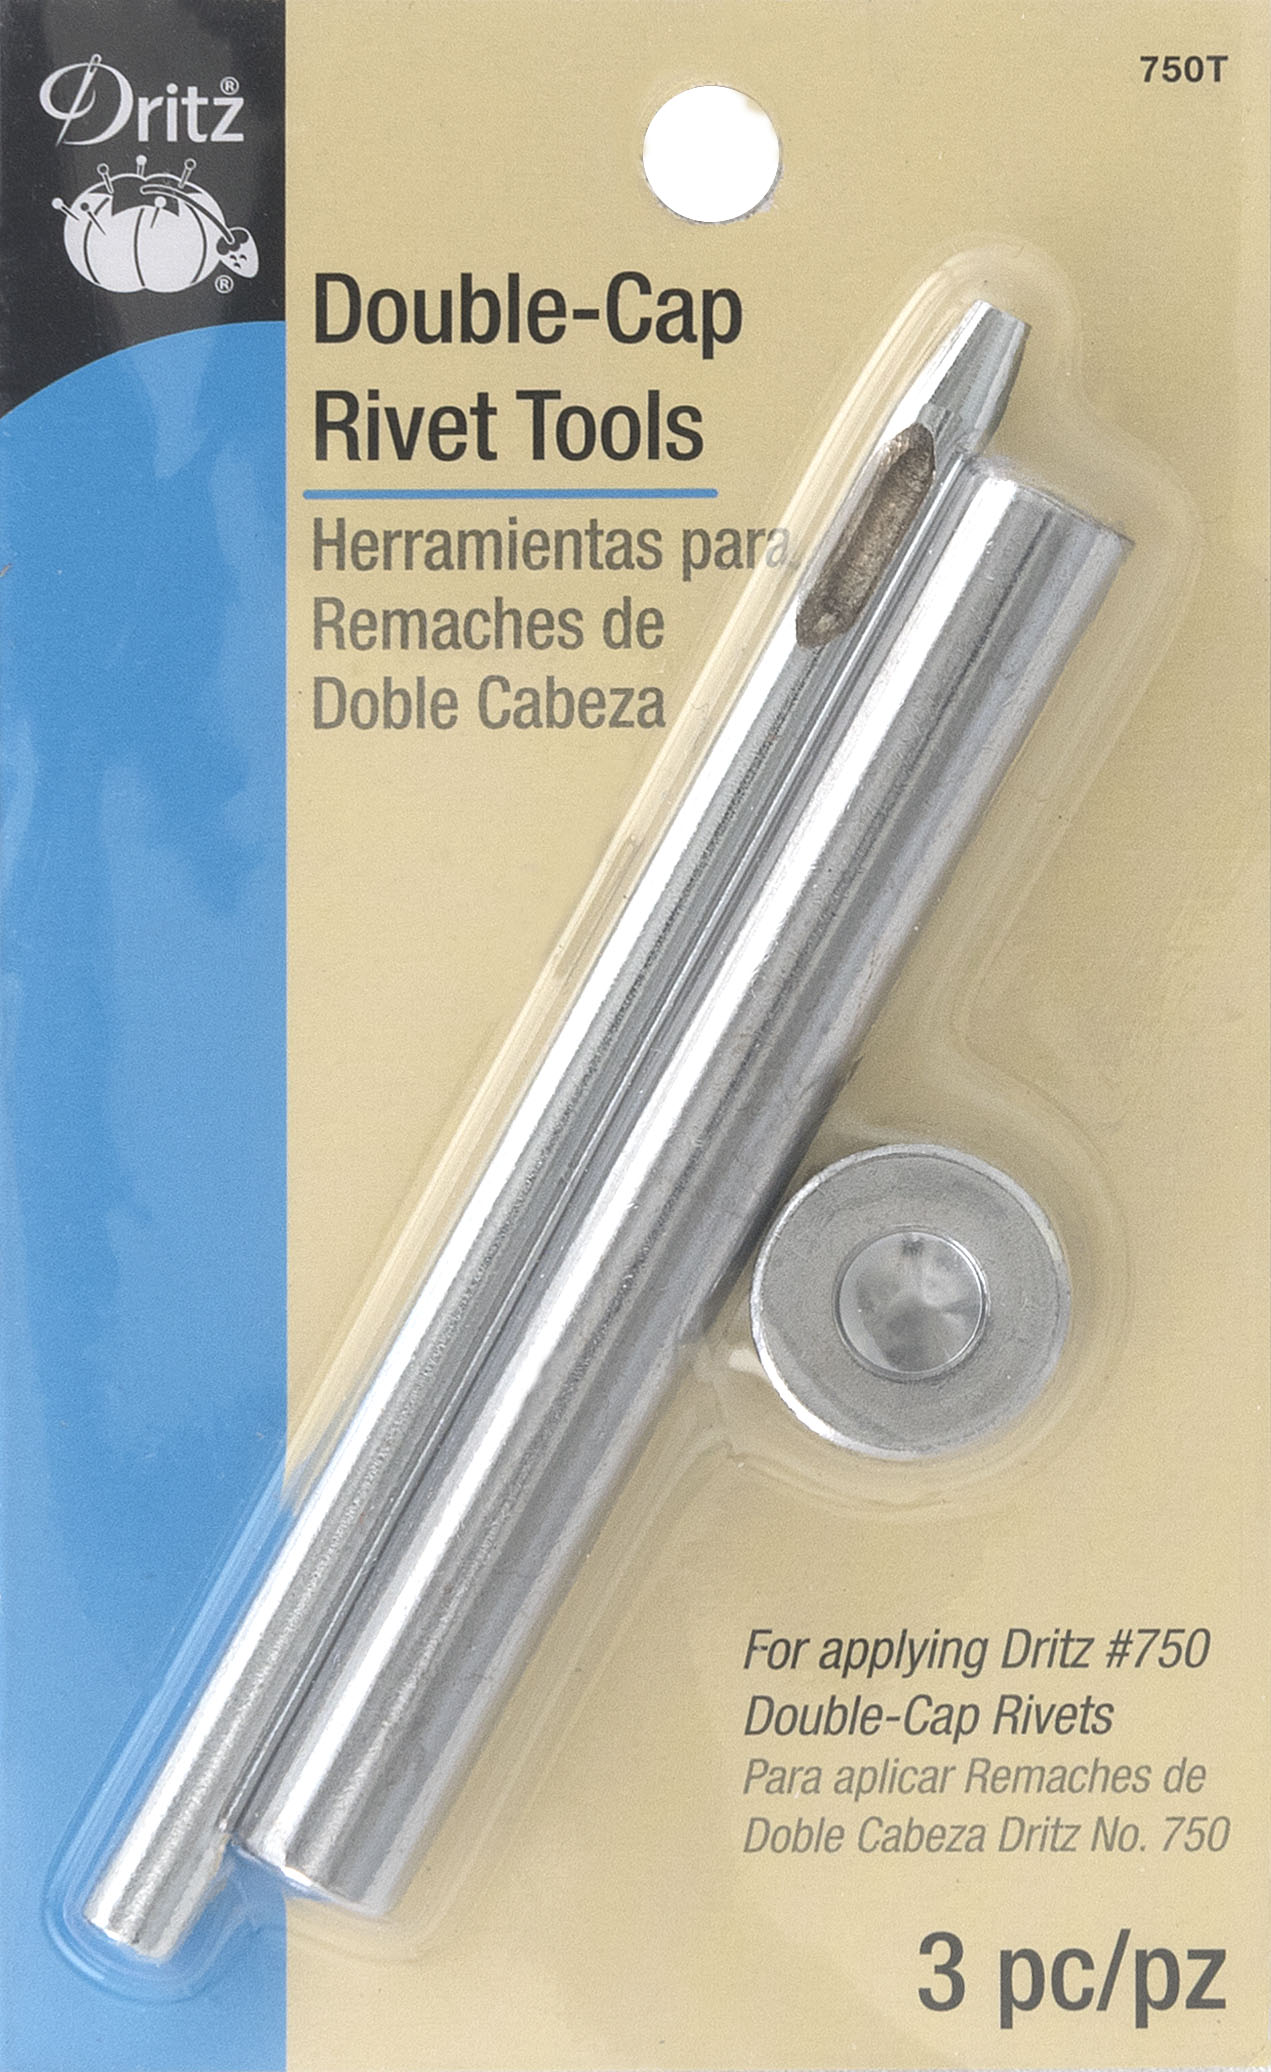 DRITZ Double-Cap Rivet Tools-750T